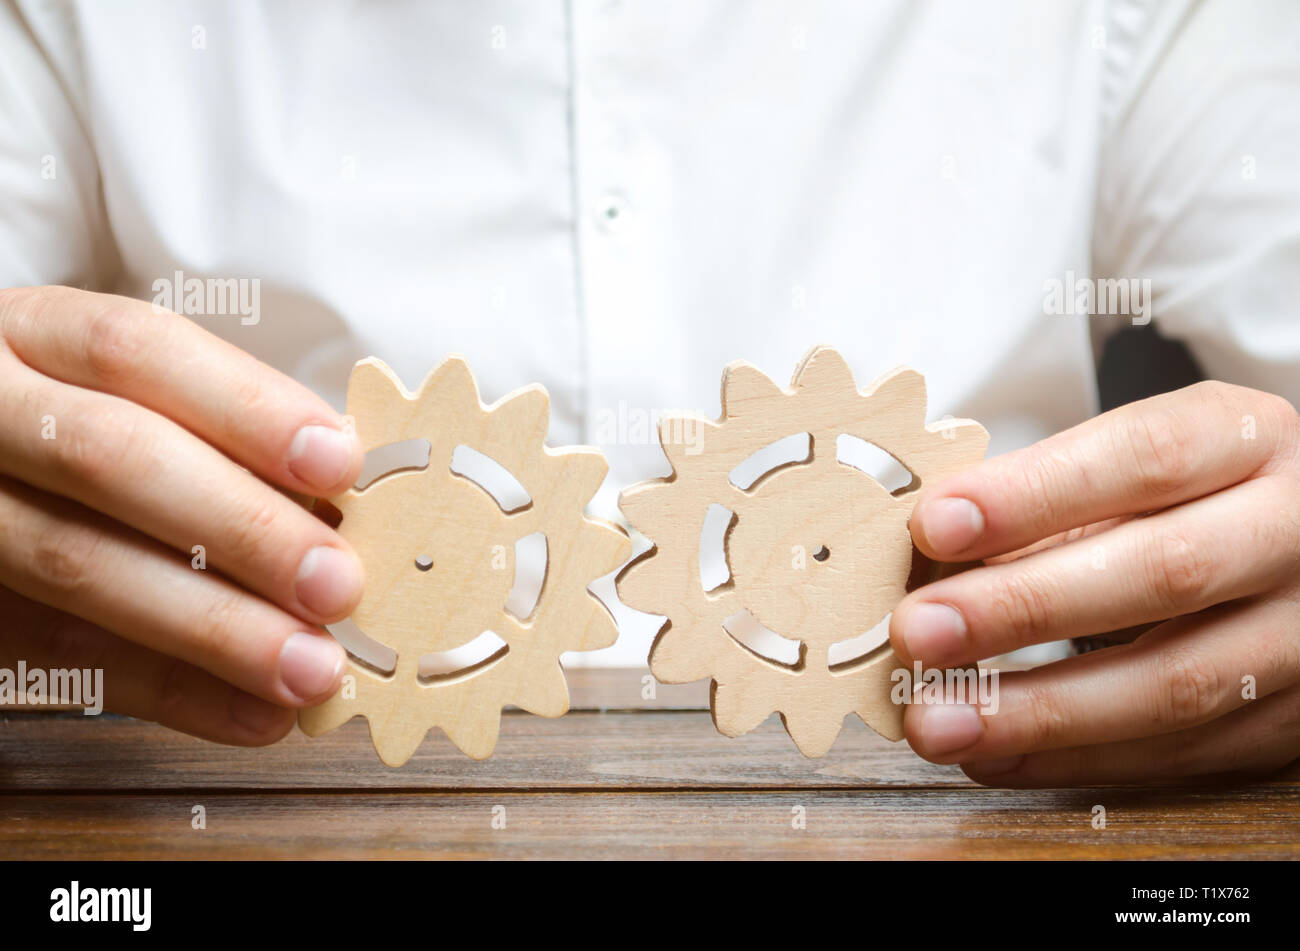 Businessman in white shirt connects two wooden gears. Symbolism of establishing business processes and communication. Improving work efficiency, estab - Stock Image